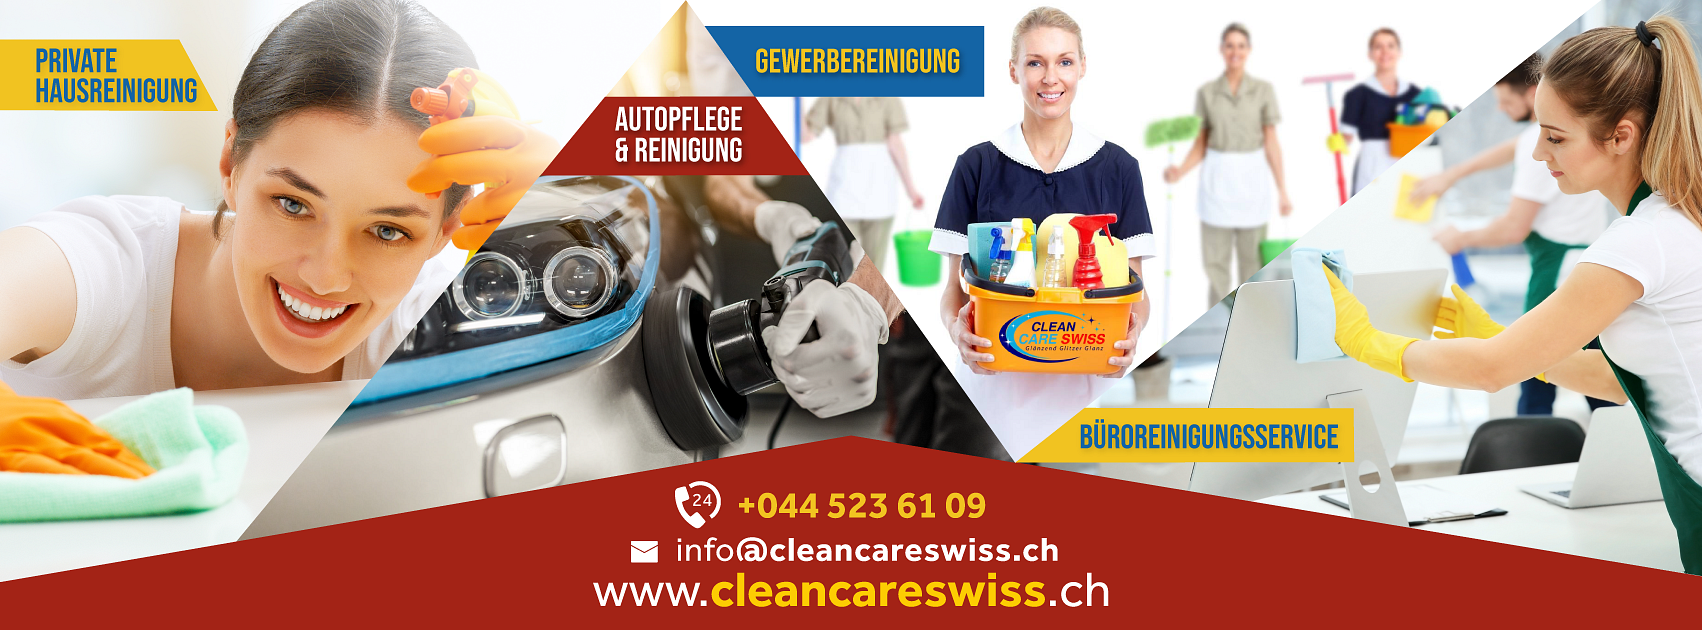 CLEAN CARE SWISS